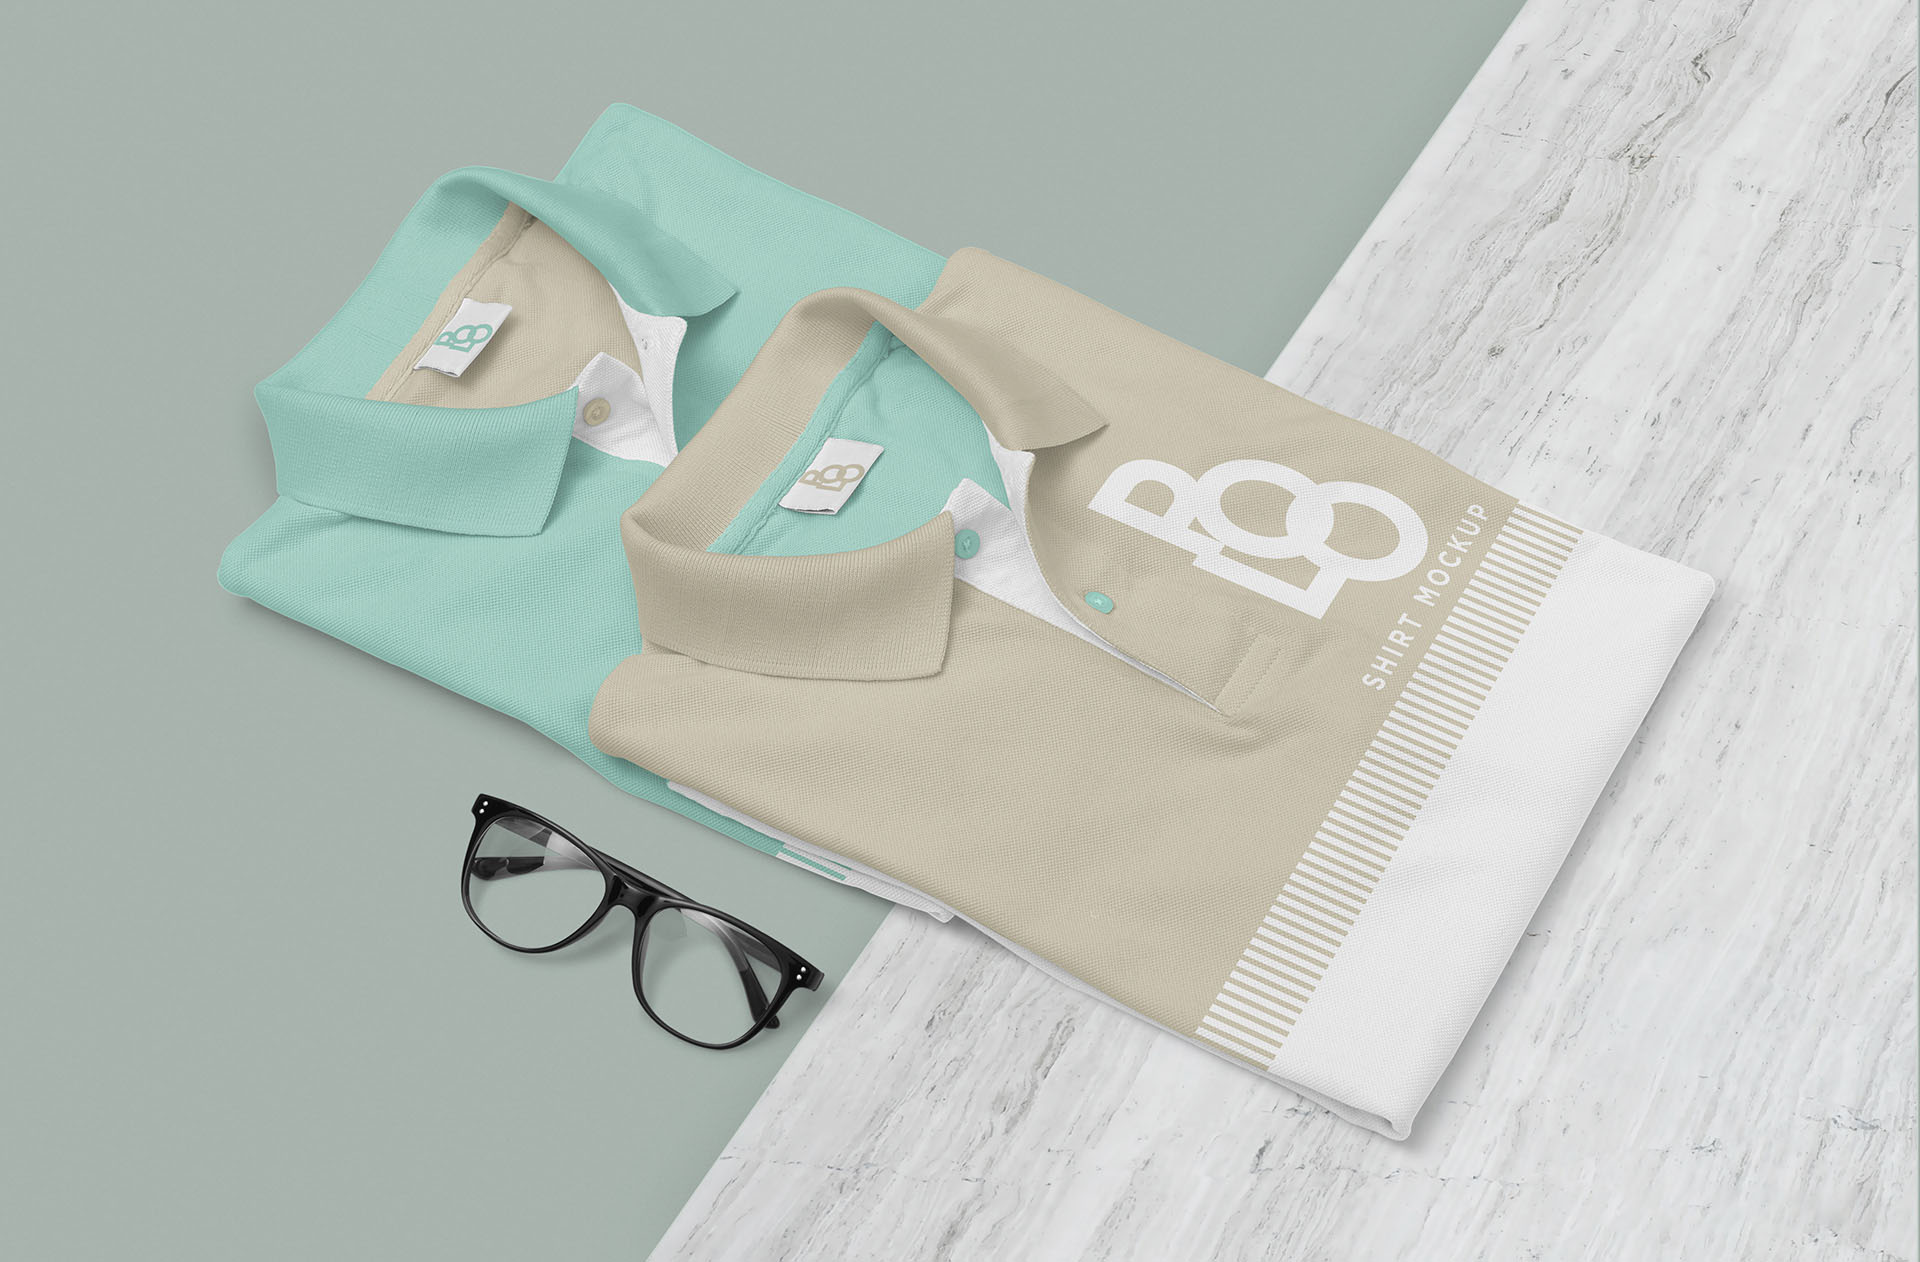 Free Stylish Polo Shirt Mockup PSD скачать бесплатно